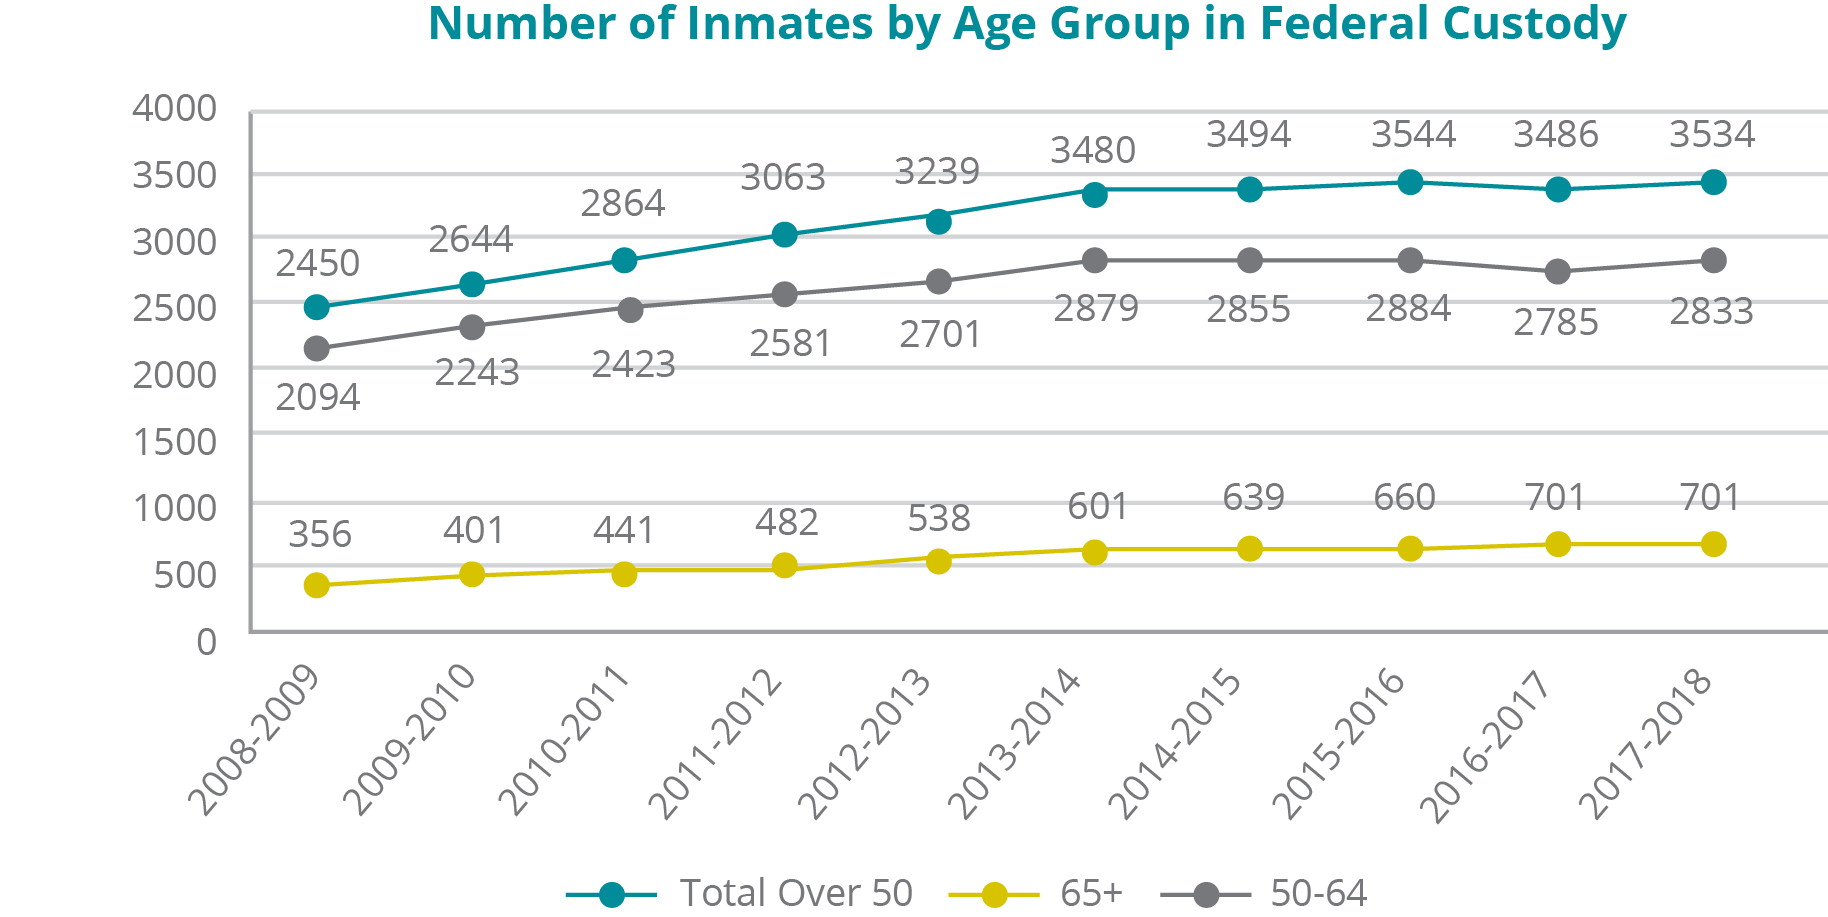 A graph depicting the number of inmates by age group in federal custody for fiscal years 2008-09 to 2017-18: -	Total inmates over 50 years of age: In 2008-09, 2450; 2009-10, 2644; 2010-11, 2864; 2011-12, 3063; 2012-13, 3239; 2013-14, 3480; 2014-15, 3494; 2015-16, 3544; 2016-17, 3486; 2017-18, 3534. - Total inmates between 50 and 64: In 2008-09, 2094; 2009-10, 2243; 2010-11, 2423; 2011-12, 2581; 2012-13, 2701; 2013-14, 2879; 2014-15, 2855; 2015-16, 2884; 2016-17, 2785; 2017-18, 2833. -	Total inmates aged 65+: In 2008-09, 356; 2009-10, 401; 2010-11, 441; 2011-12, 482; 2012-13, 538; 2013-14, 601; 2014-15, 639; 2015-16, 660; 2016-17, 701; 2017-18, 701.